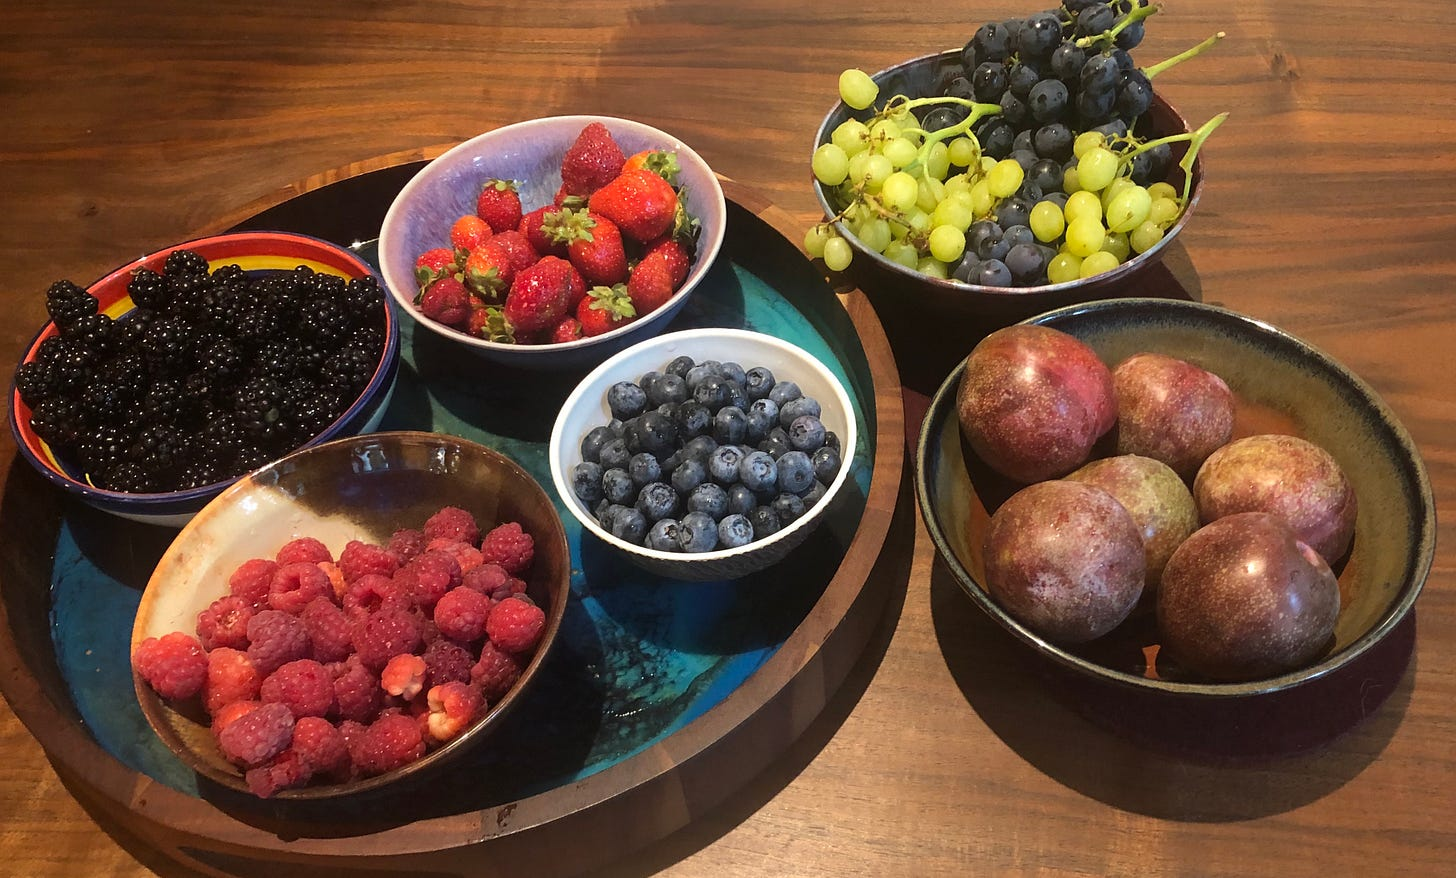 Blackberries, strawberries, raspberries, blueberries, plums, and two kinds of grapes, all from a single farmer's market in early September, 2021